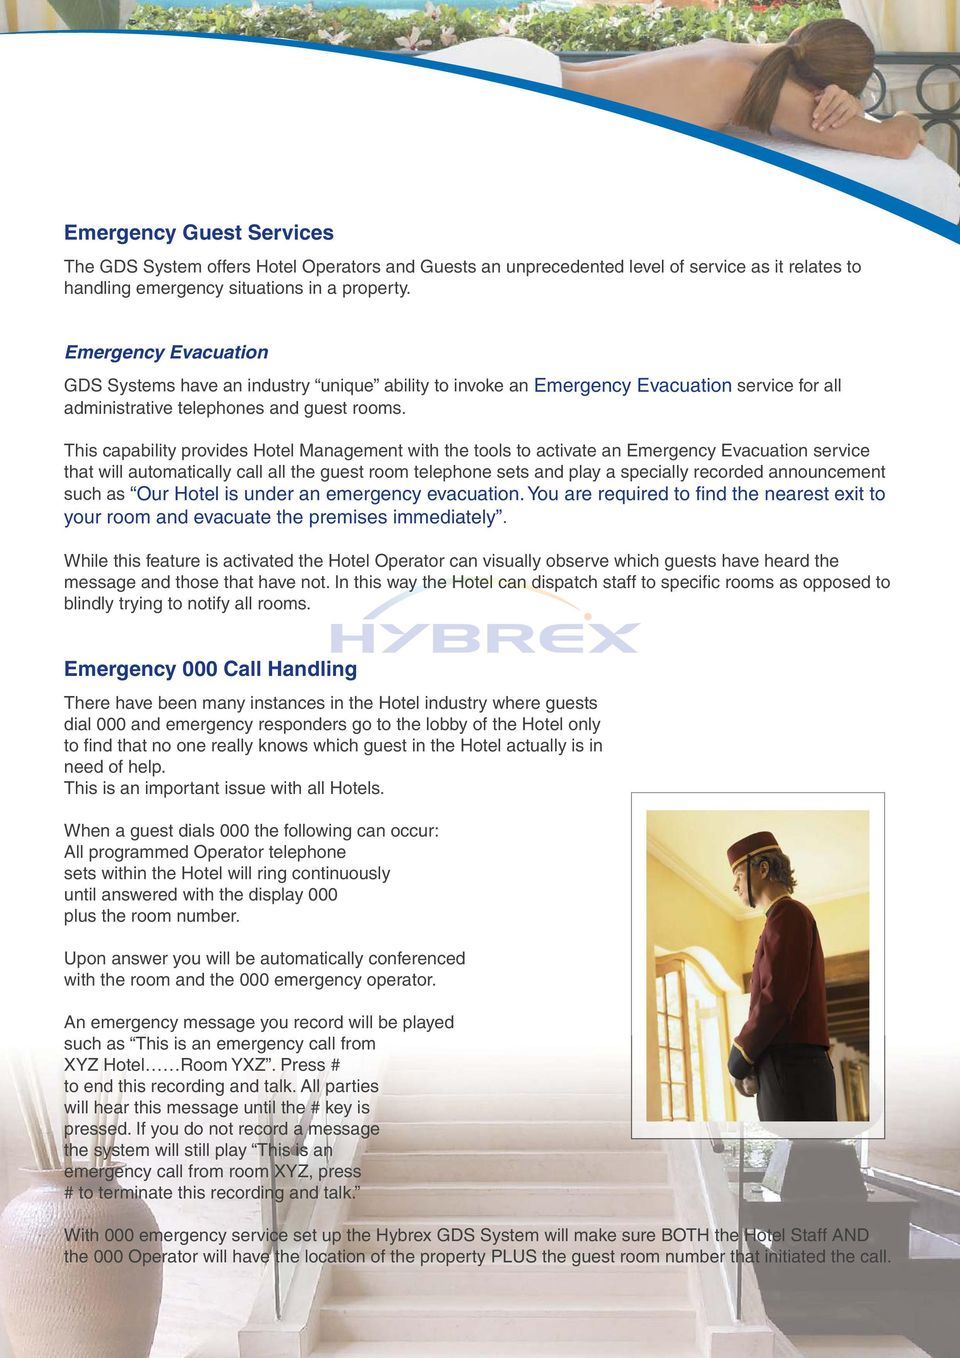 This capability provides Hotel Management with the tools to activate an Emergency Evacuation service that will automatically call all the guest room telephone sets and play a specially recorded